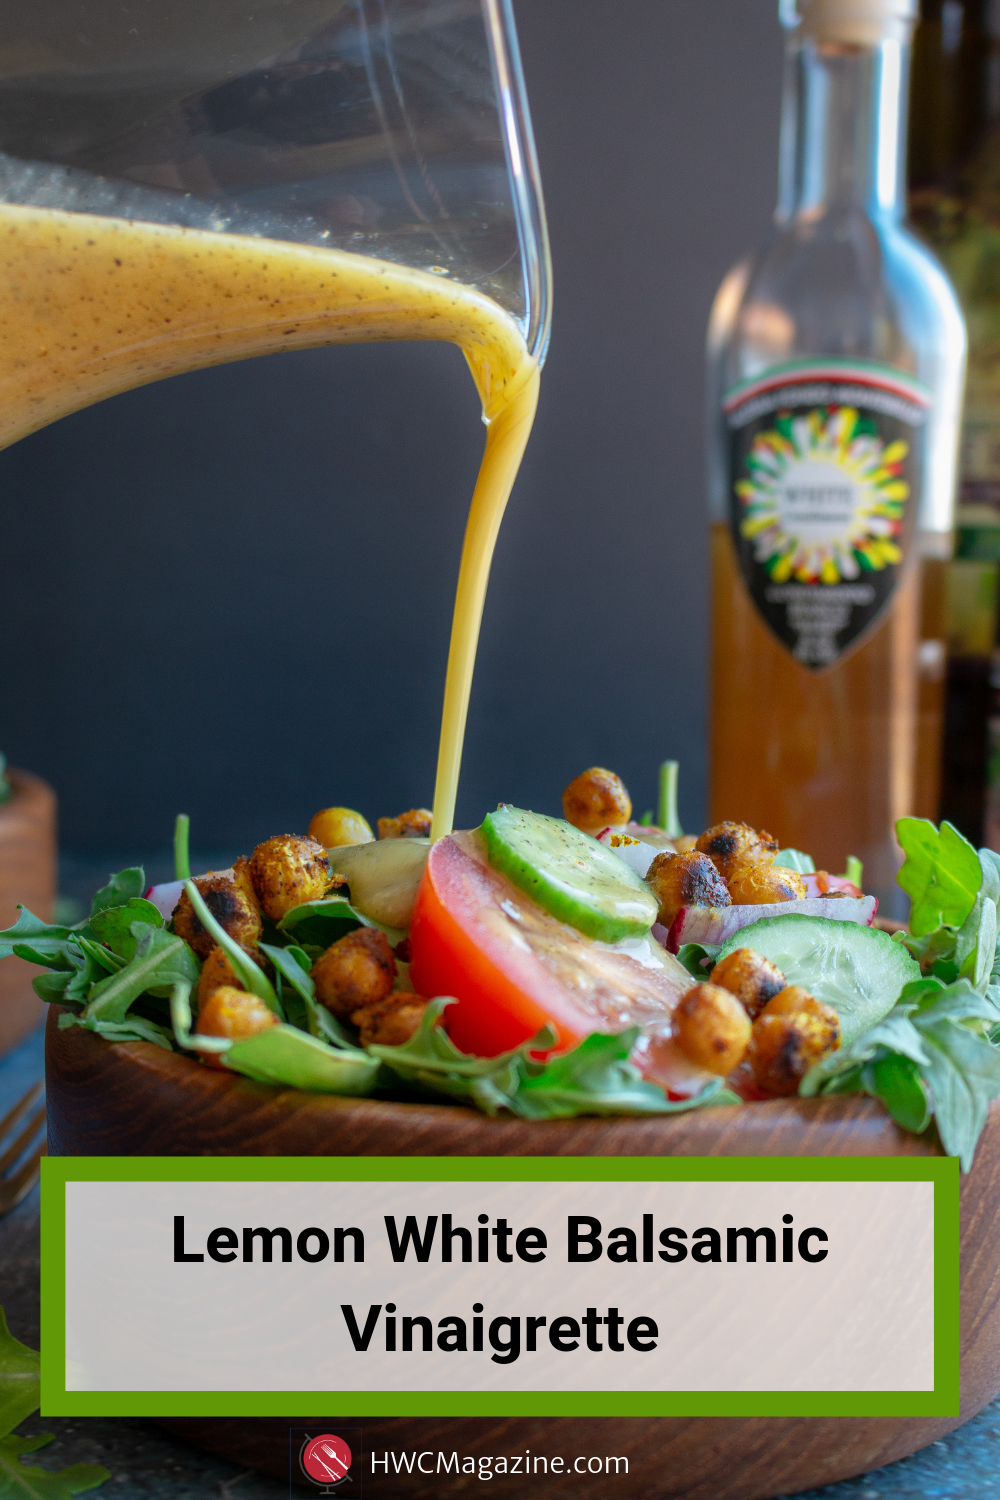 Lemon White Balsamic Vinaigrette (dressing) is a refreshing, light and zippy easy homemade vinaigrette perfect for tossed salads, pasta salads, drizzled on grilled peaches, chicken or fish. #salad #dressing #vinaigrette #Italian #whitebalsamic #Sicilian #healthyliving #easyrecipe / https://www.hwcmagazine.com